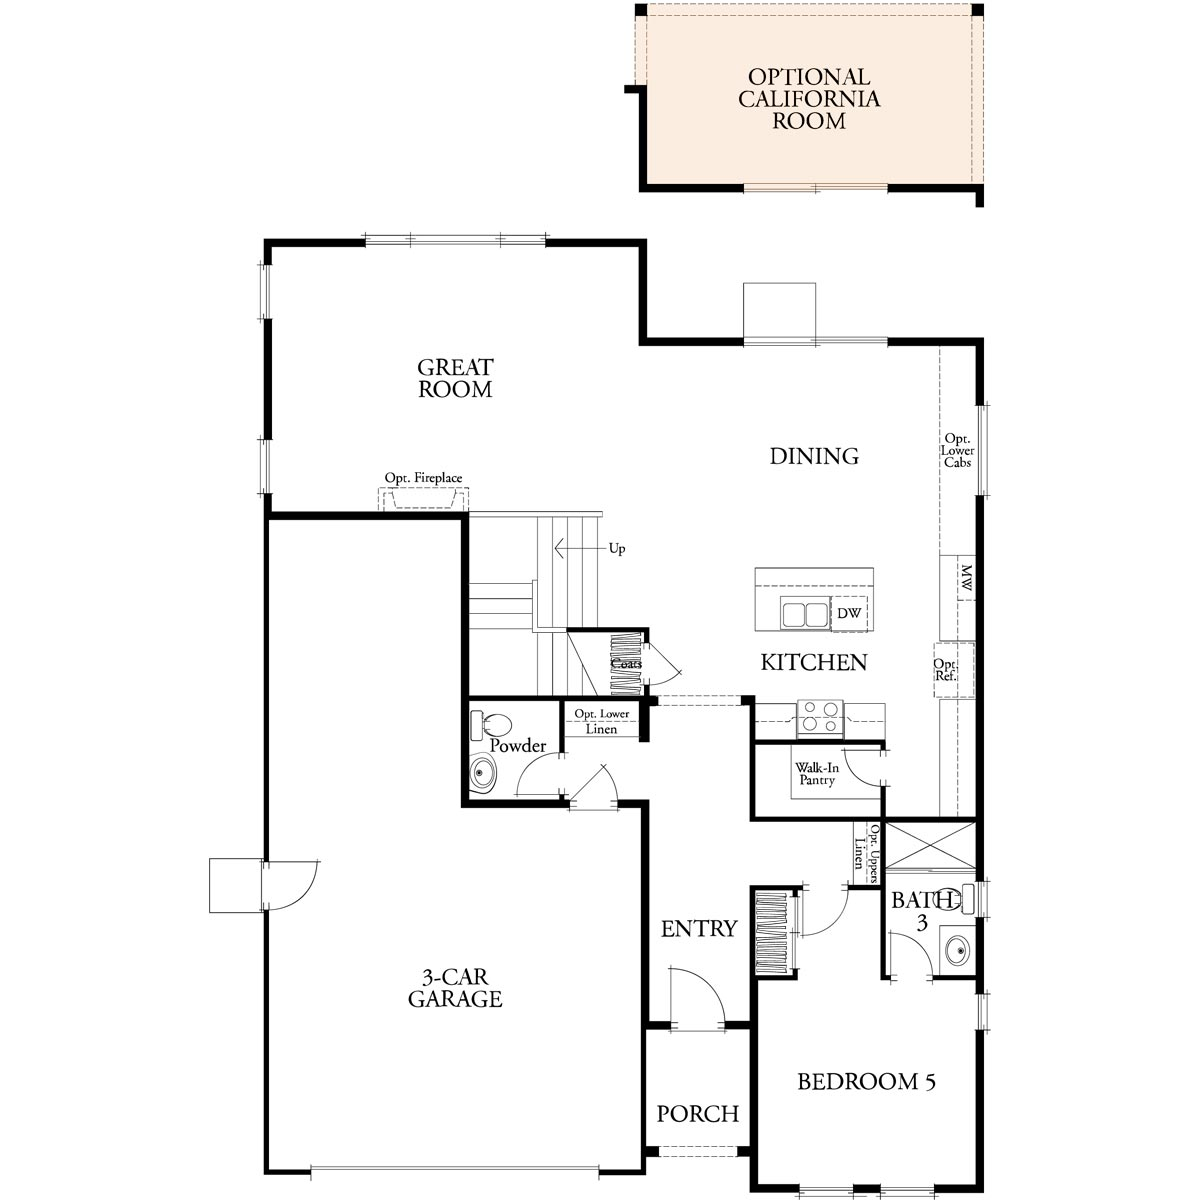 Residence 2 floor 1 plan | Citrus at Emerson Ranch in Oakley, CA | Brookfield Residential